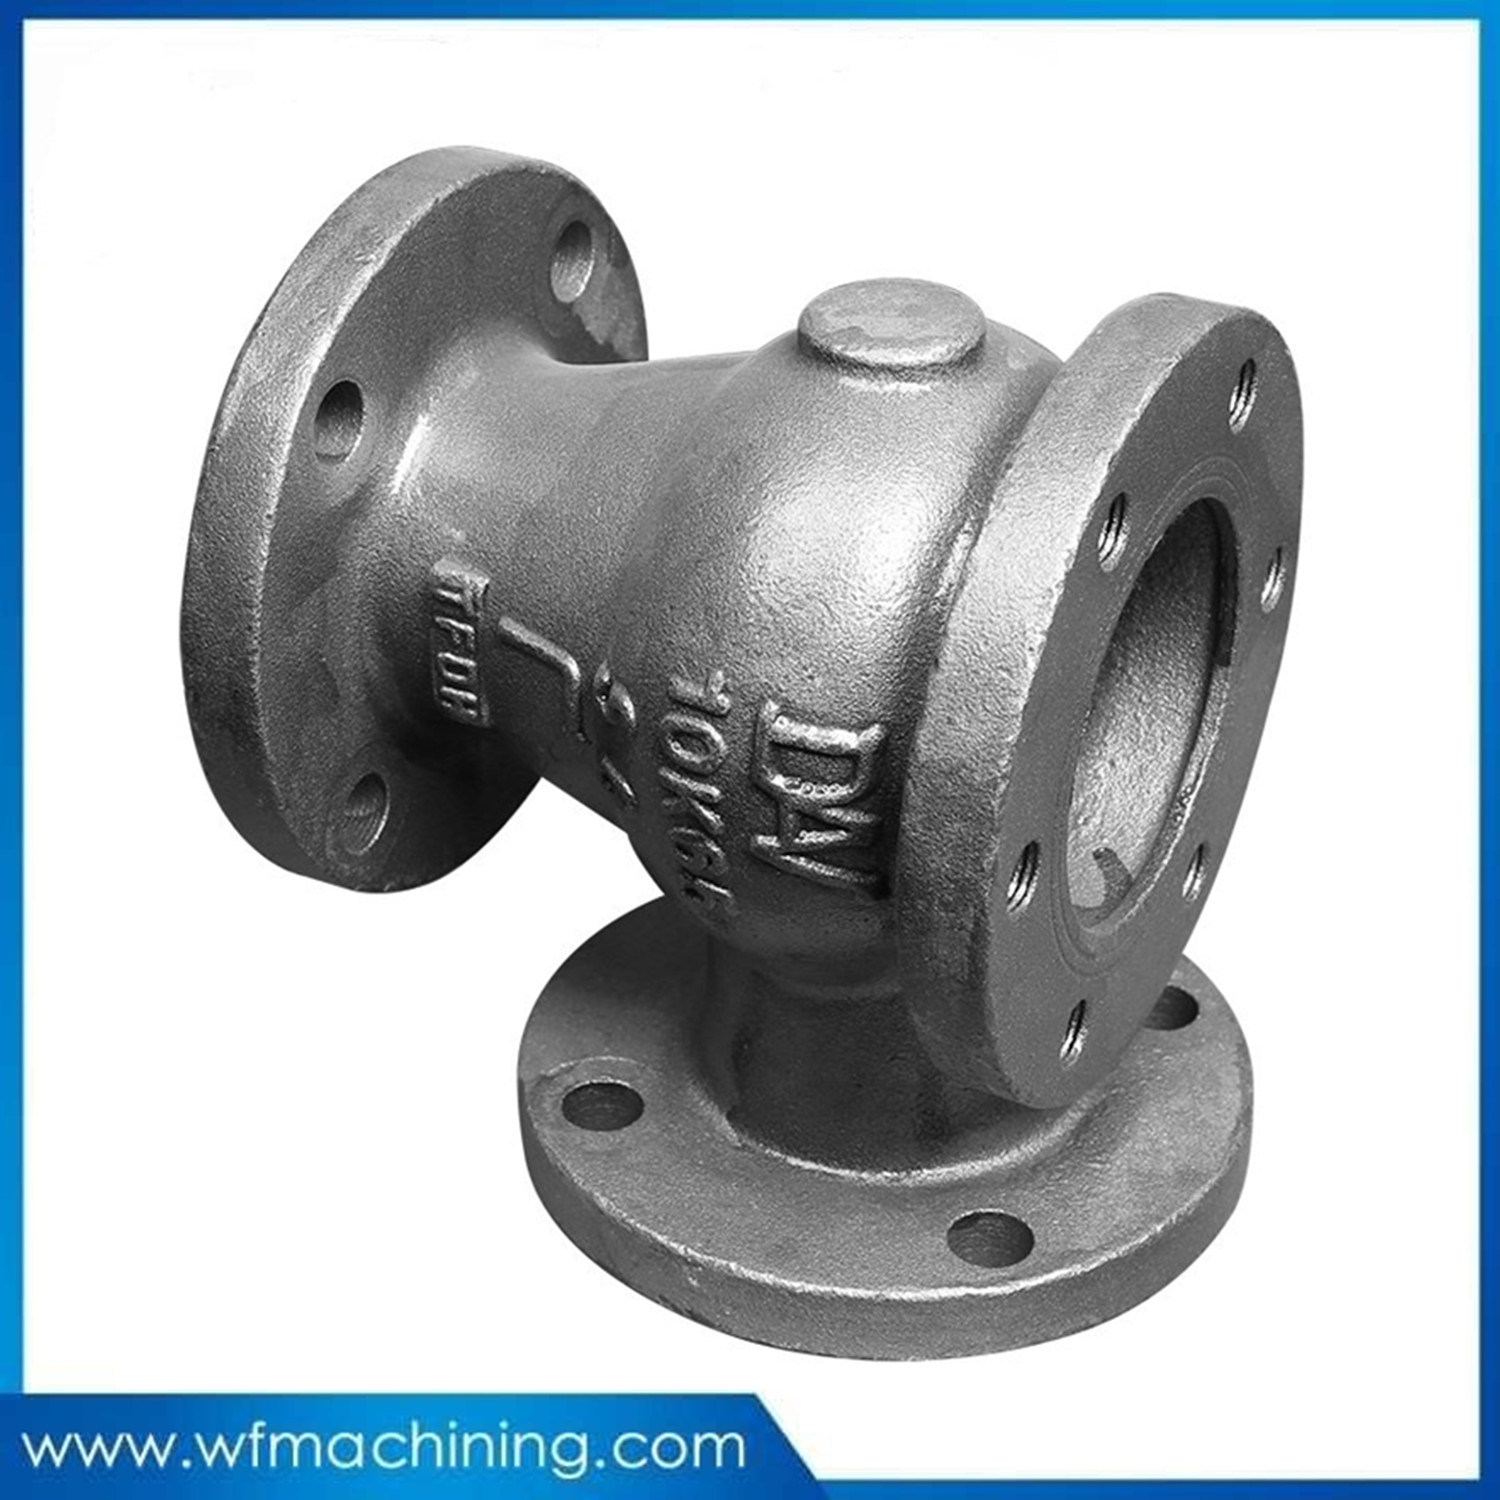 Pump Water Hot Item Precision Casting Magnetic Drive Centrifugal Pump Water Pumps Parts Of Auto Parts